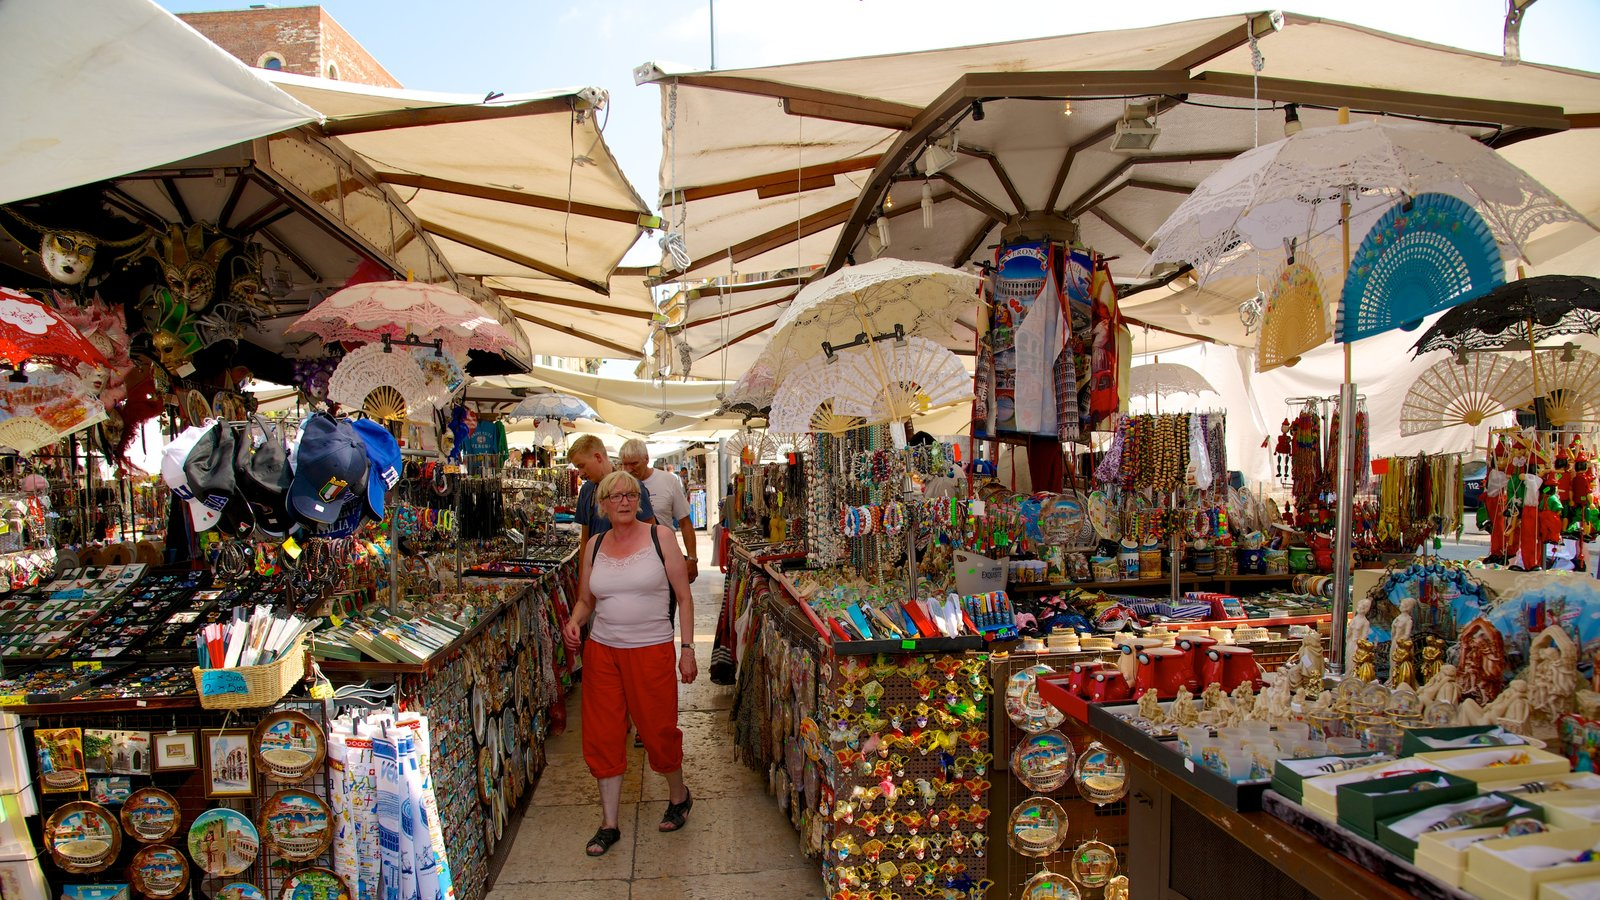 Piazza delle Erbe which includes street scenes and markets as well as a small group of people